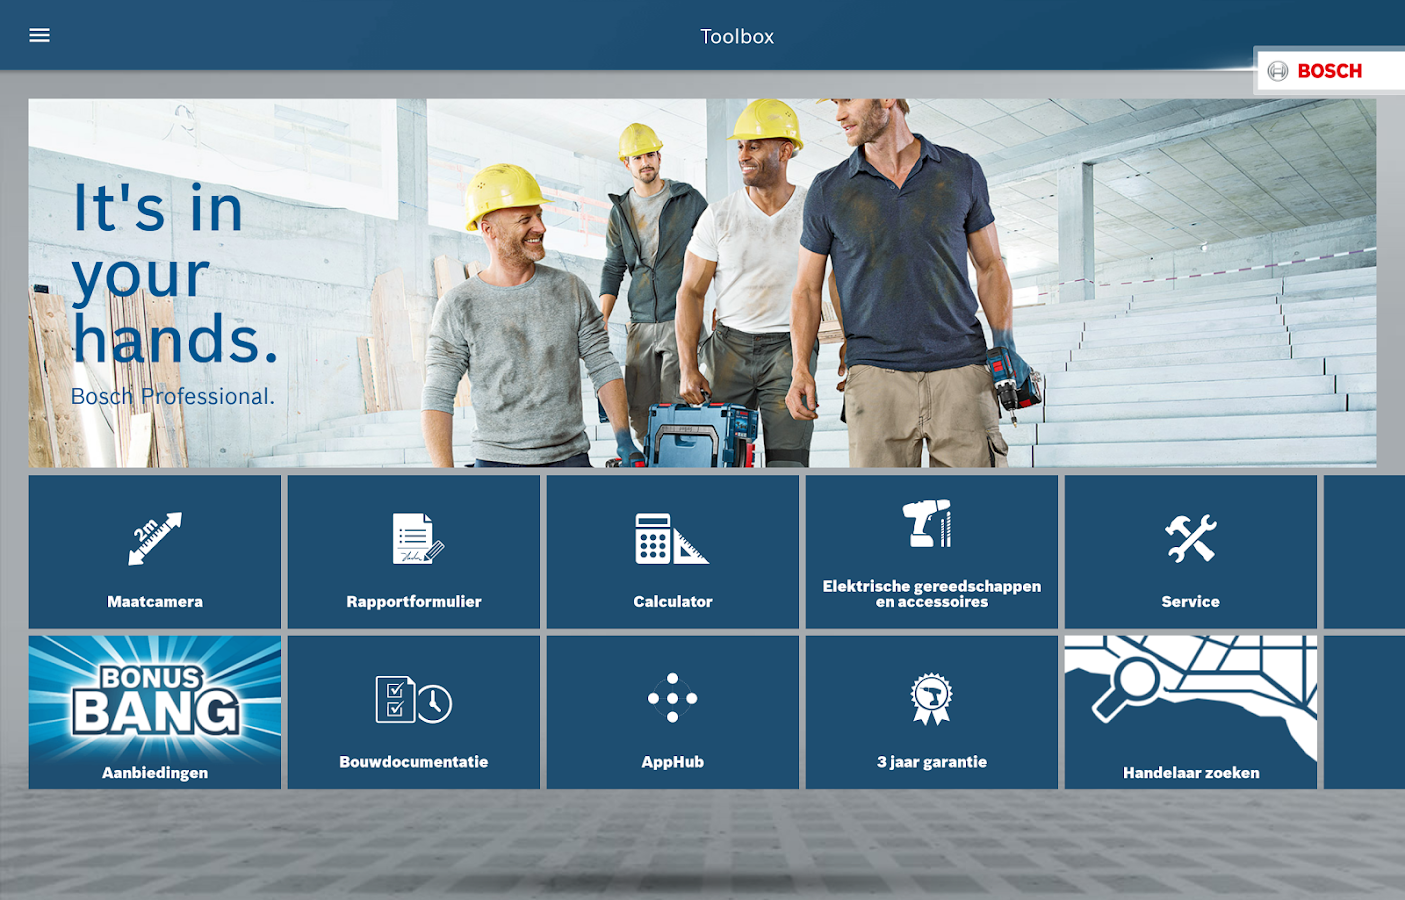 Bosch Toolbox: screenshot